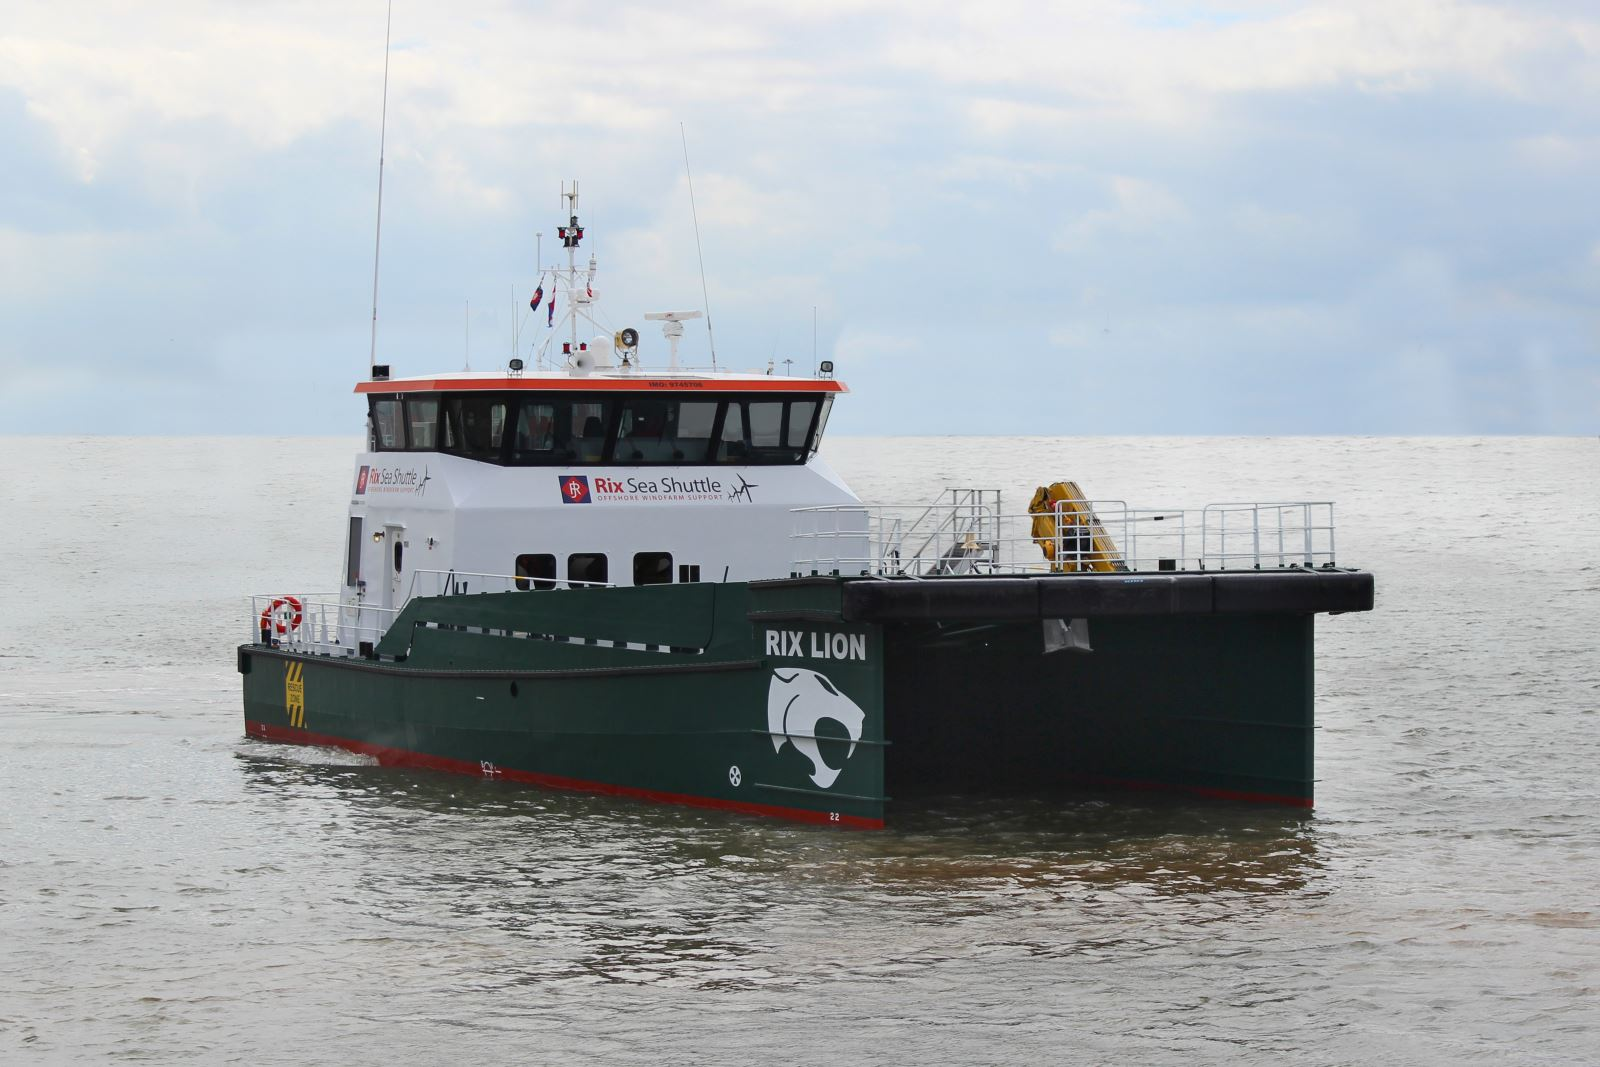 Rix Lion crew transfer vessel